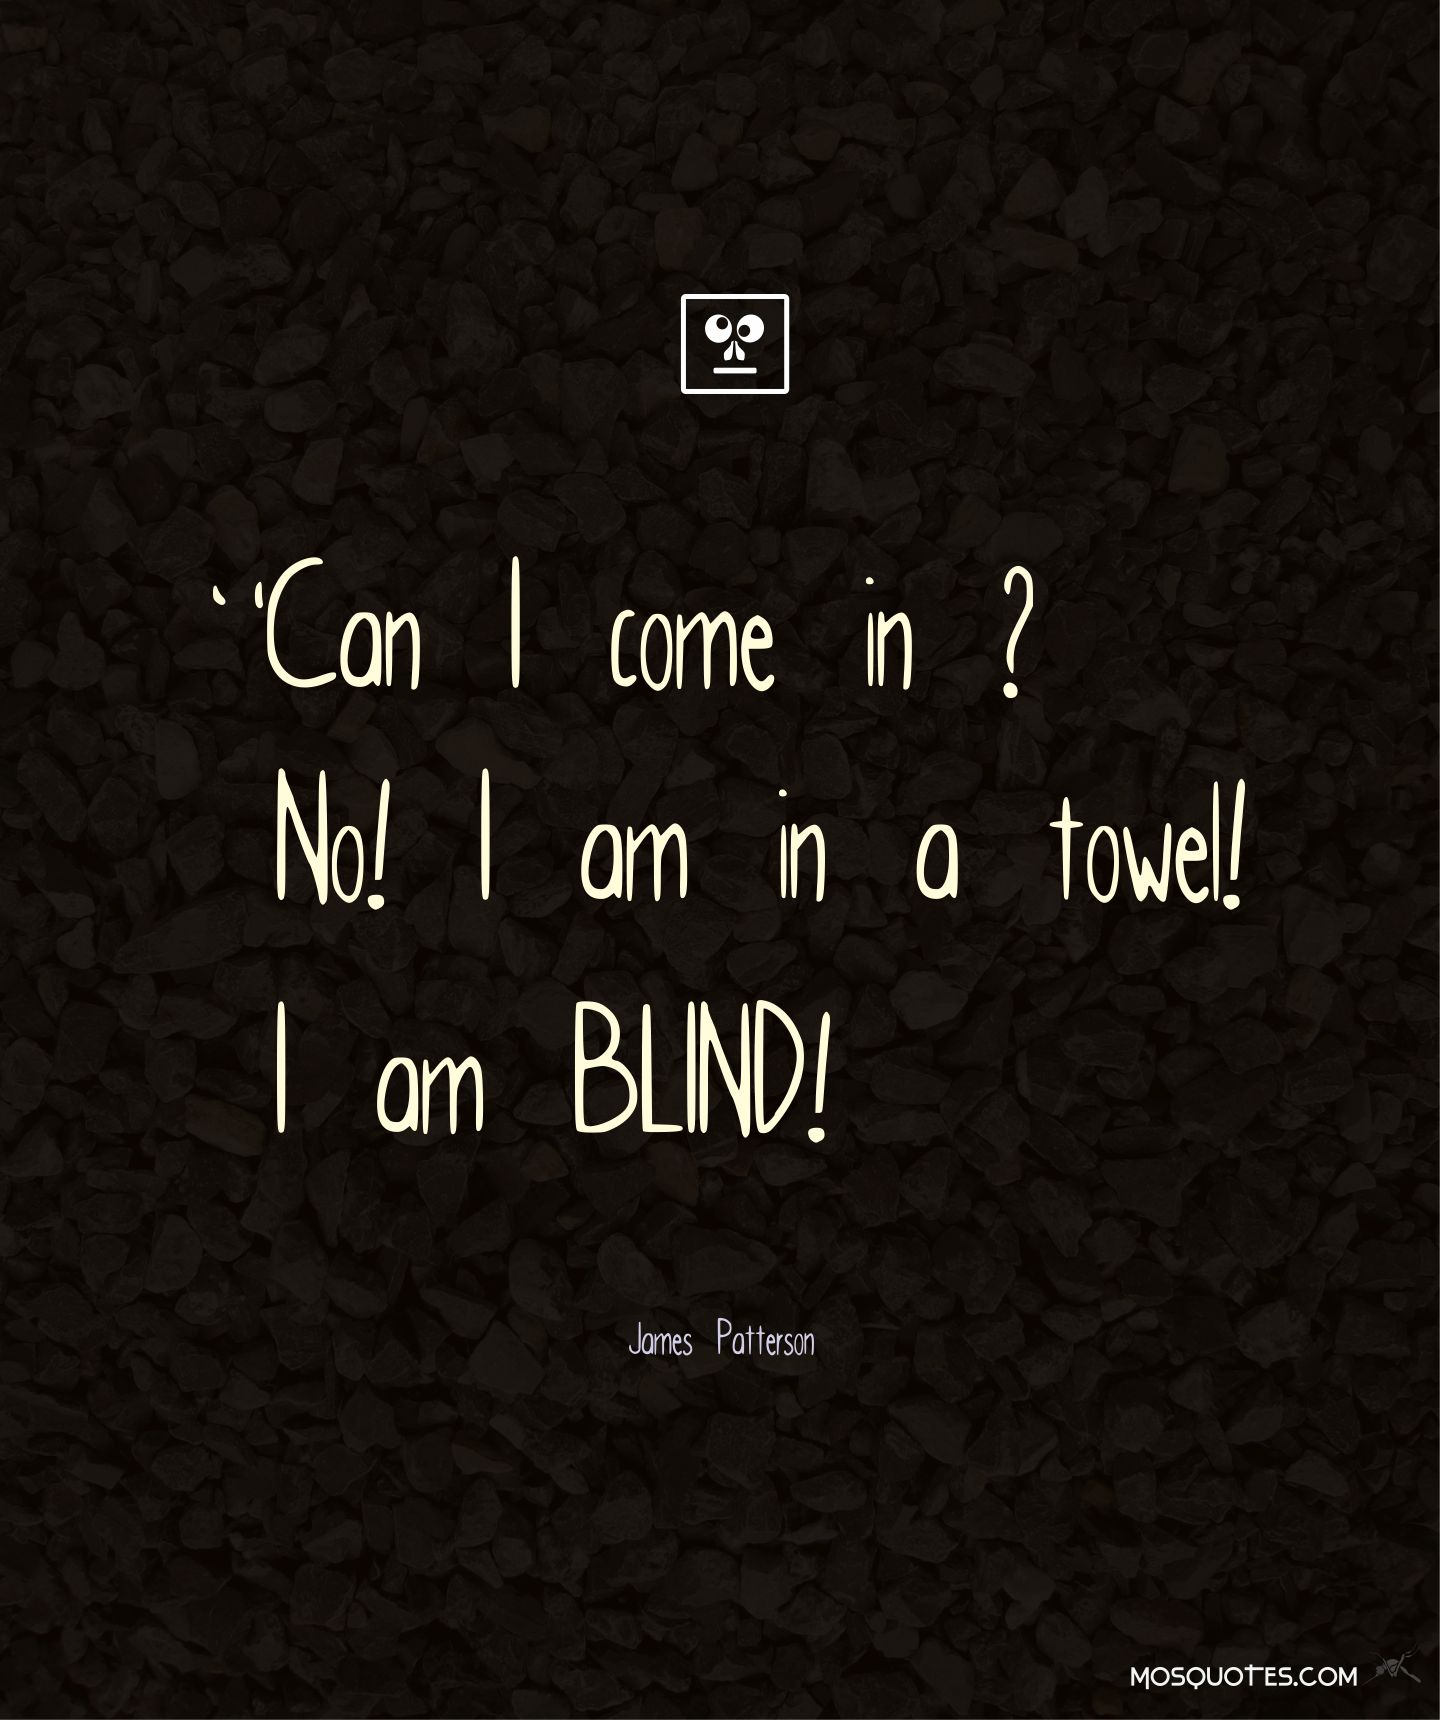 Blind Quotes: Funny Blind Quotes. QuotesGram